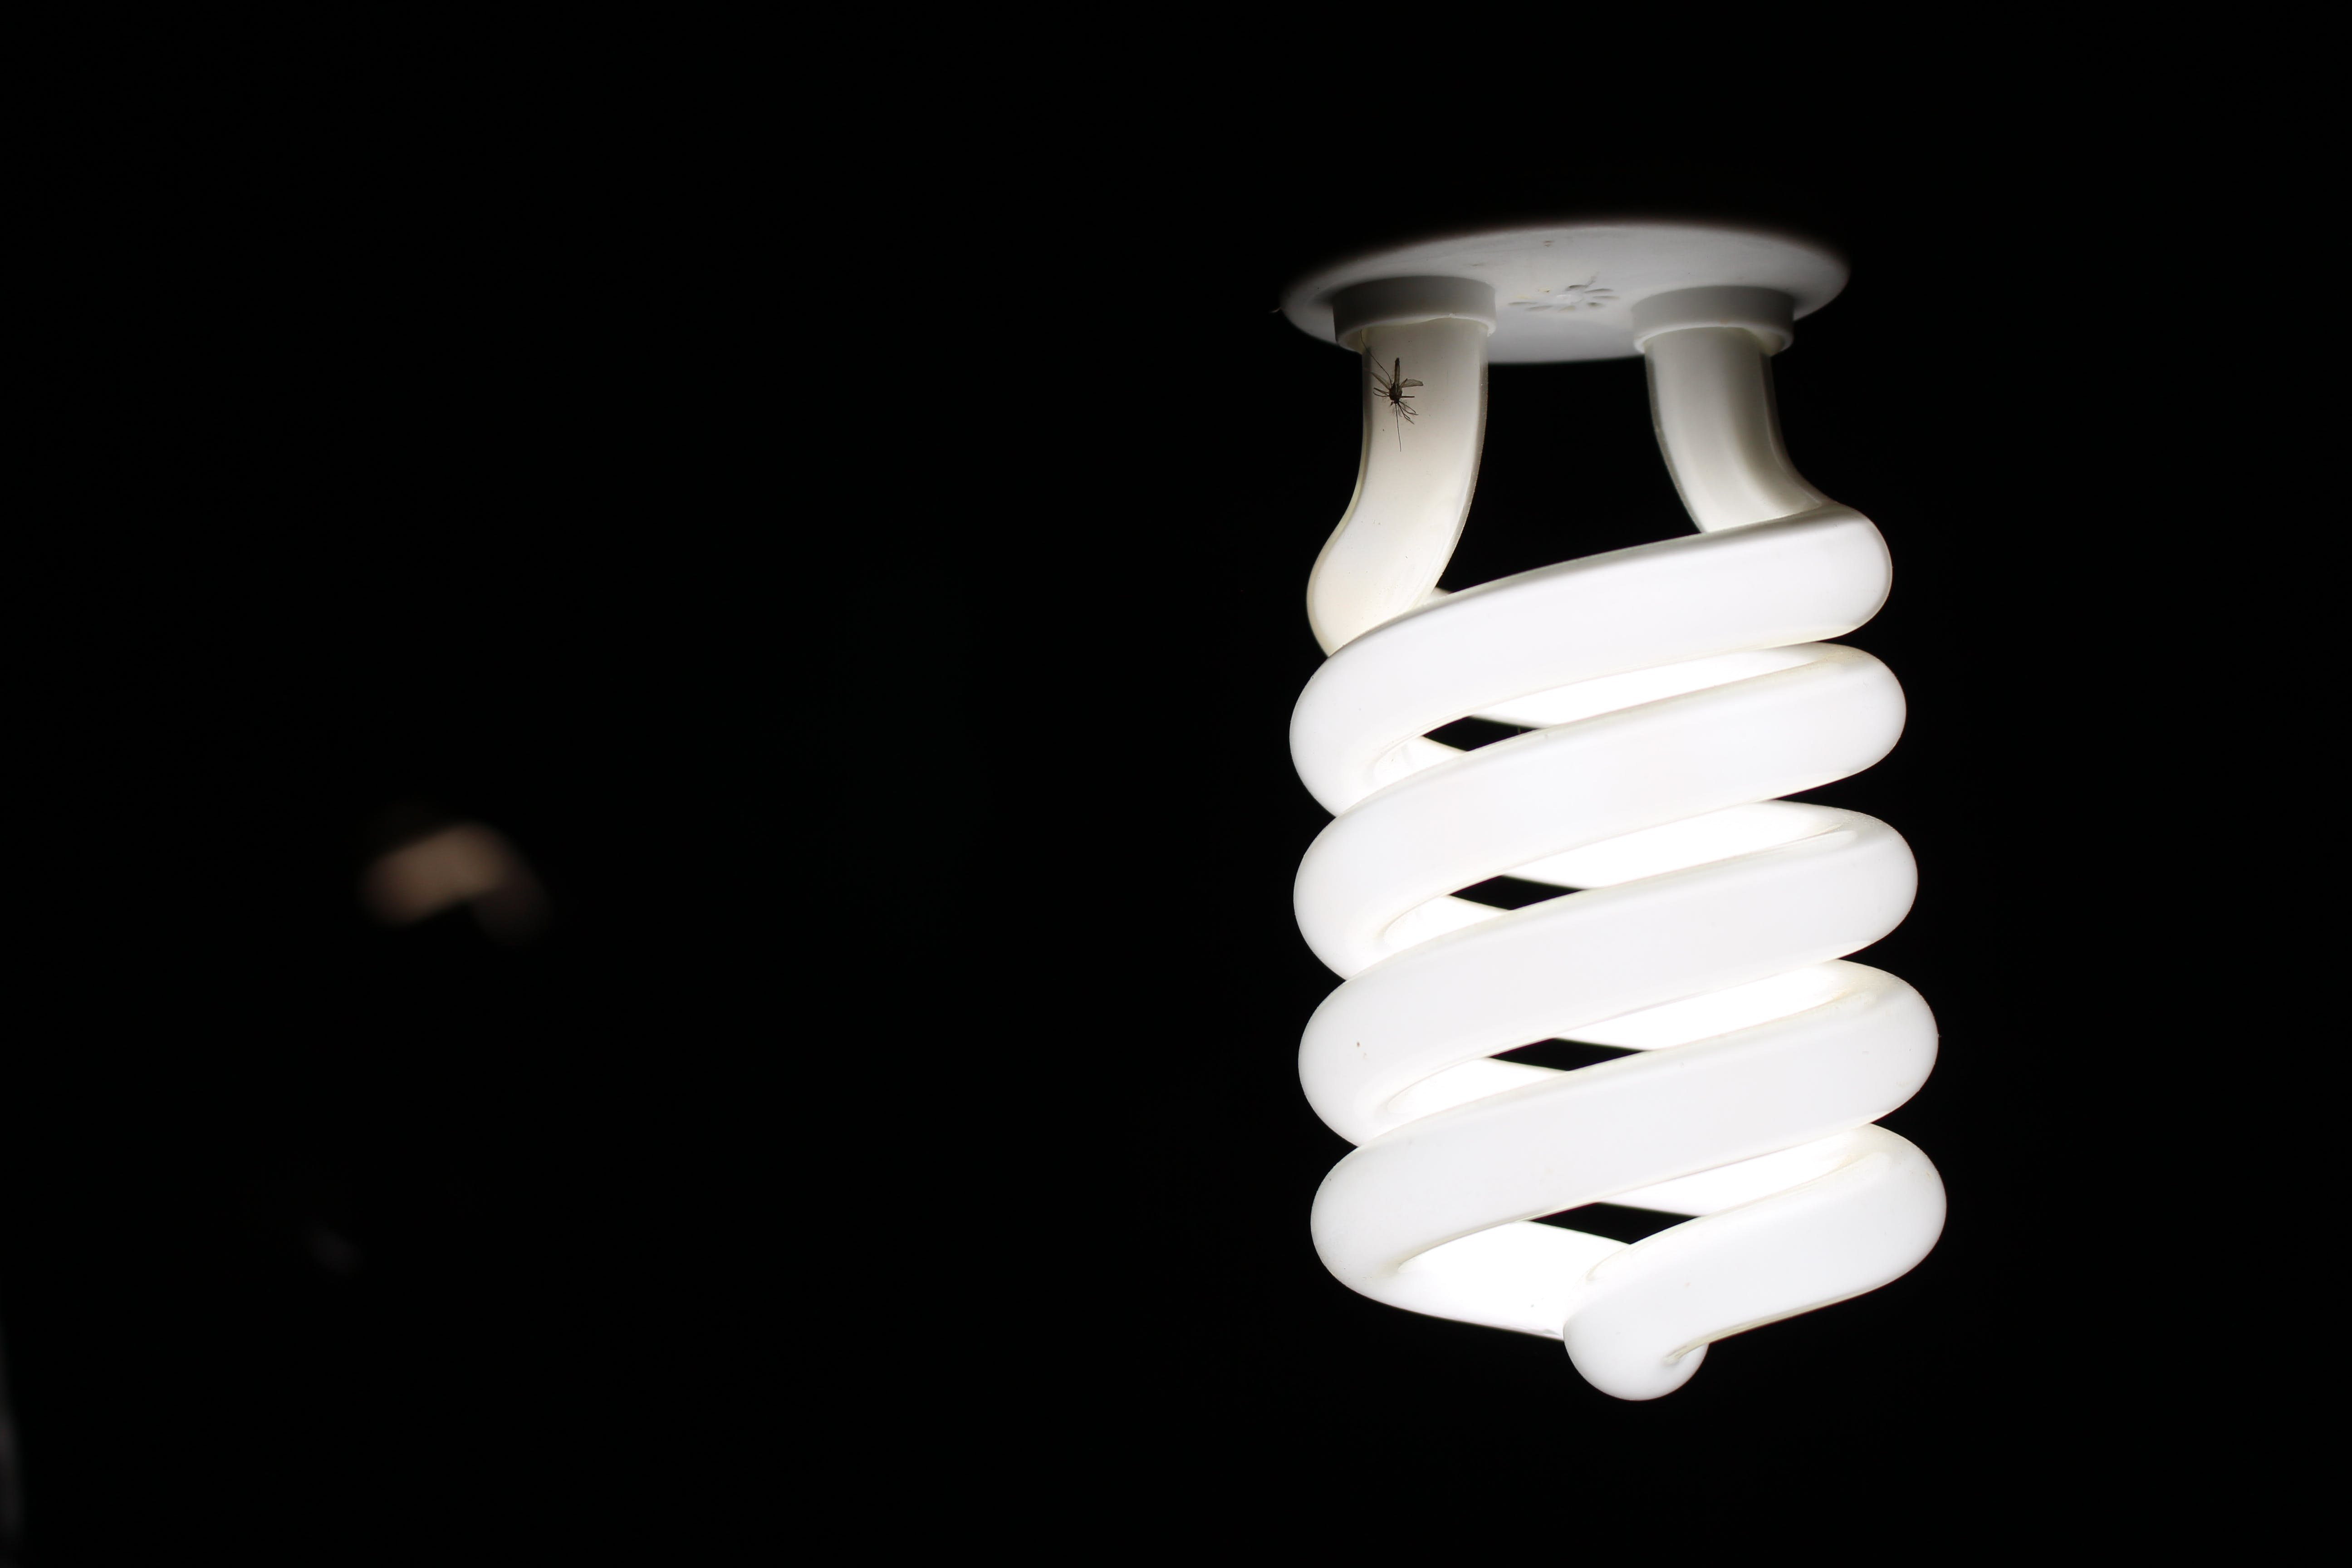 Close-Up Photography of Spiral Lightbulb